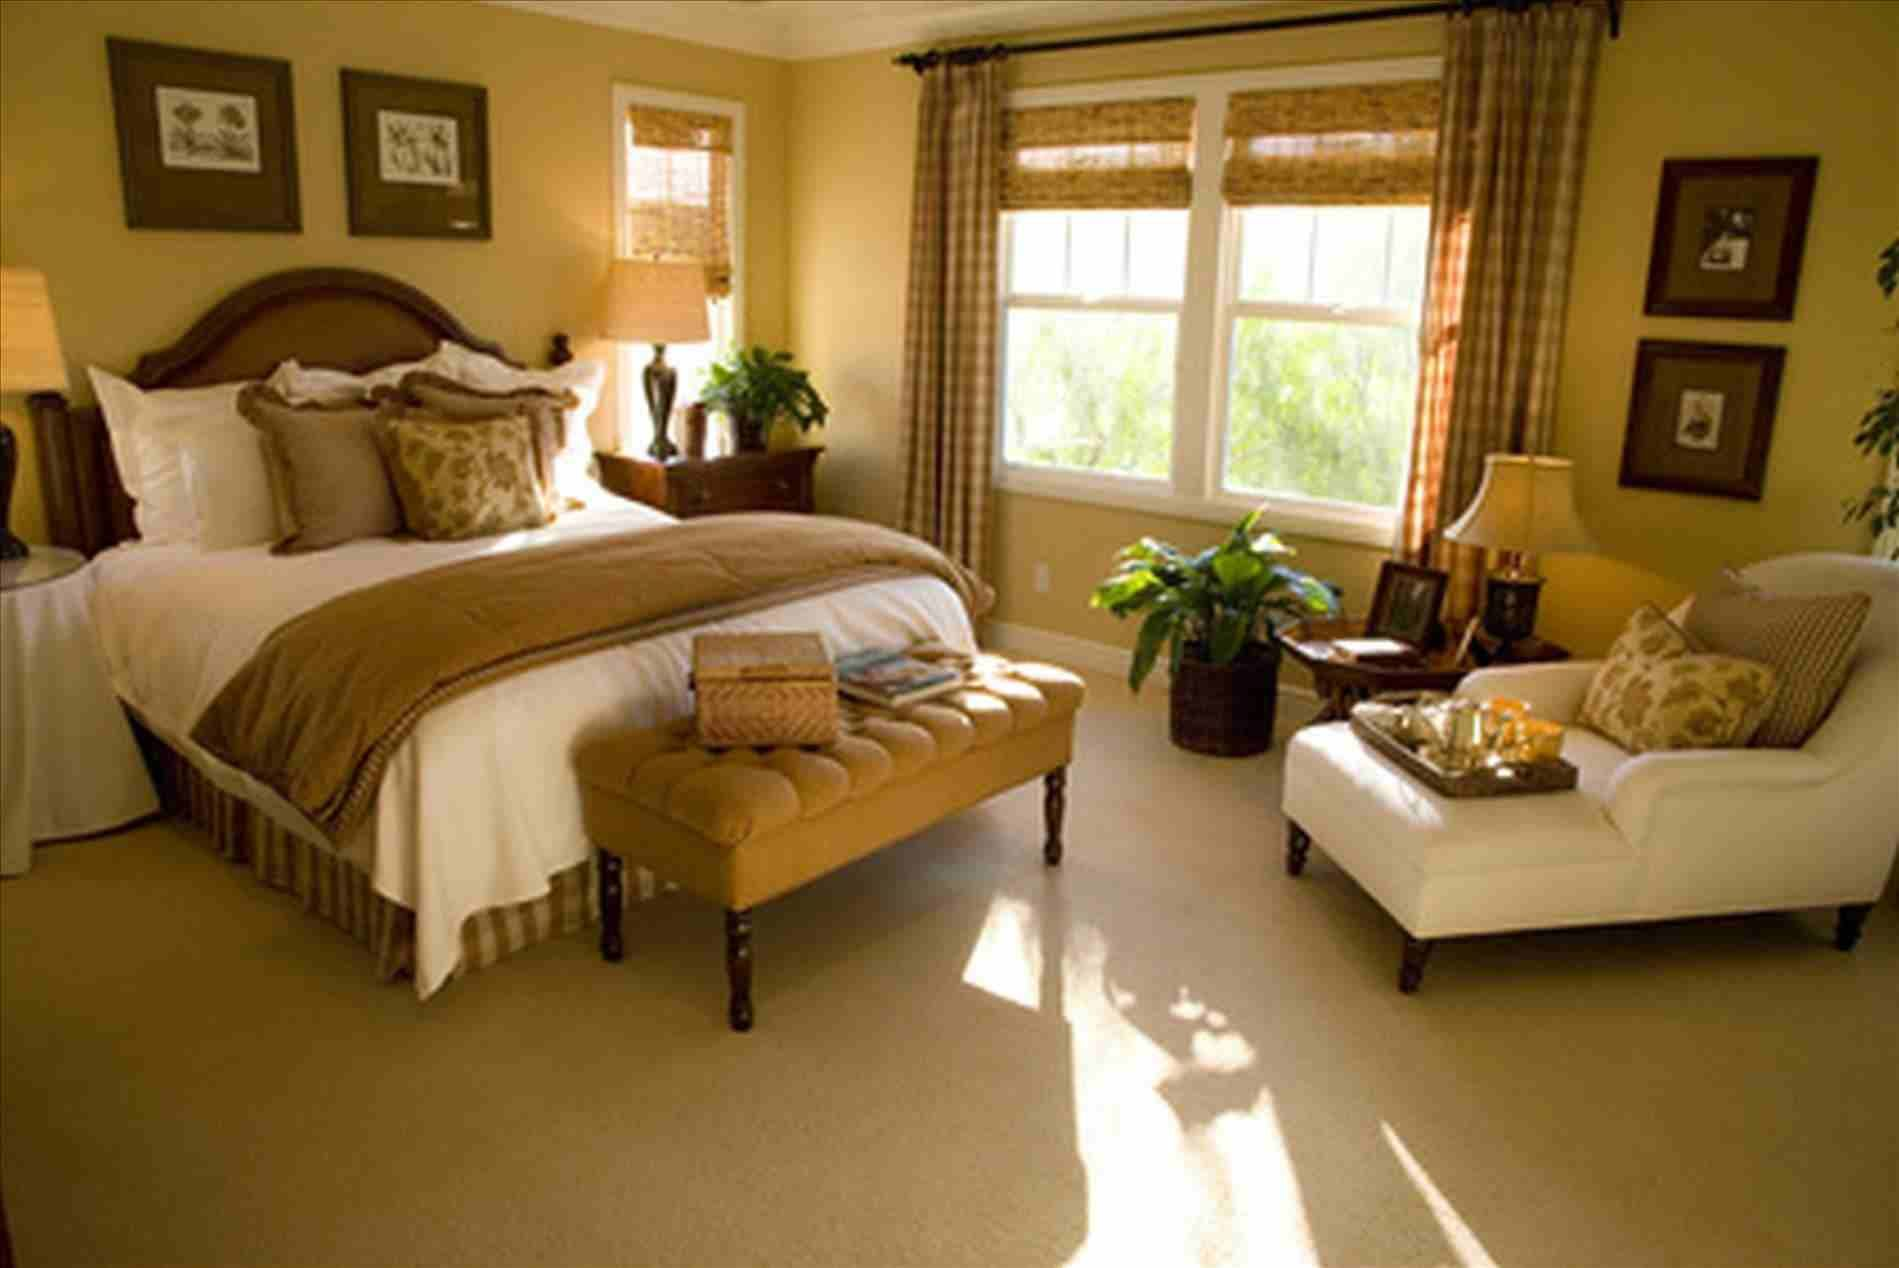 Master Bedroom Renovation Ideas Traditional Bedroom Design Elegant Master Bedroom Small Master Bedroom Decorating Ideas